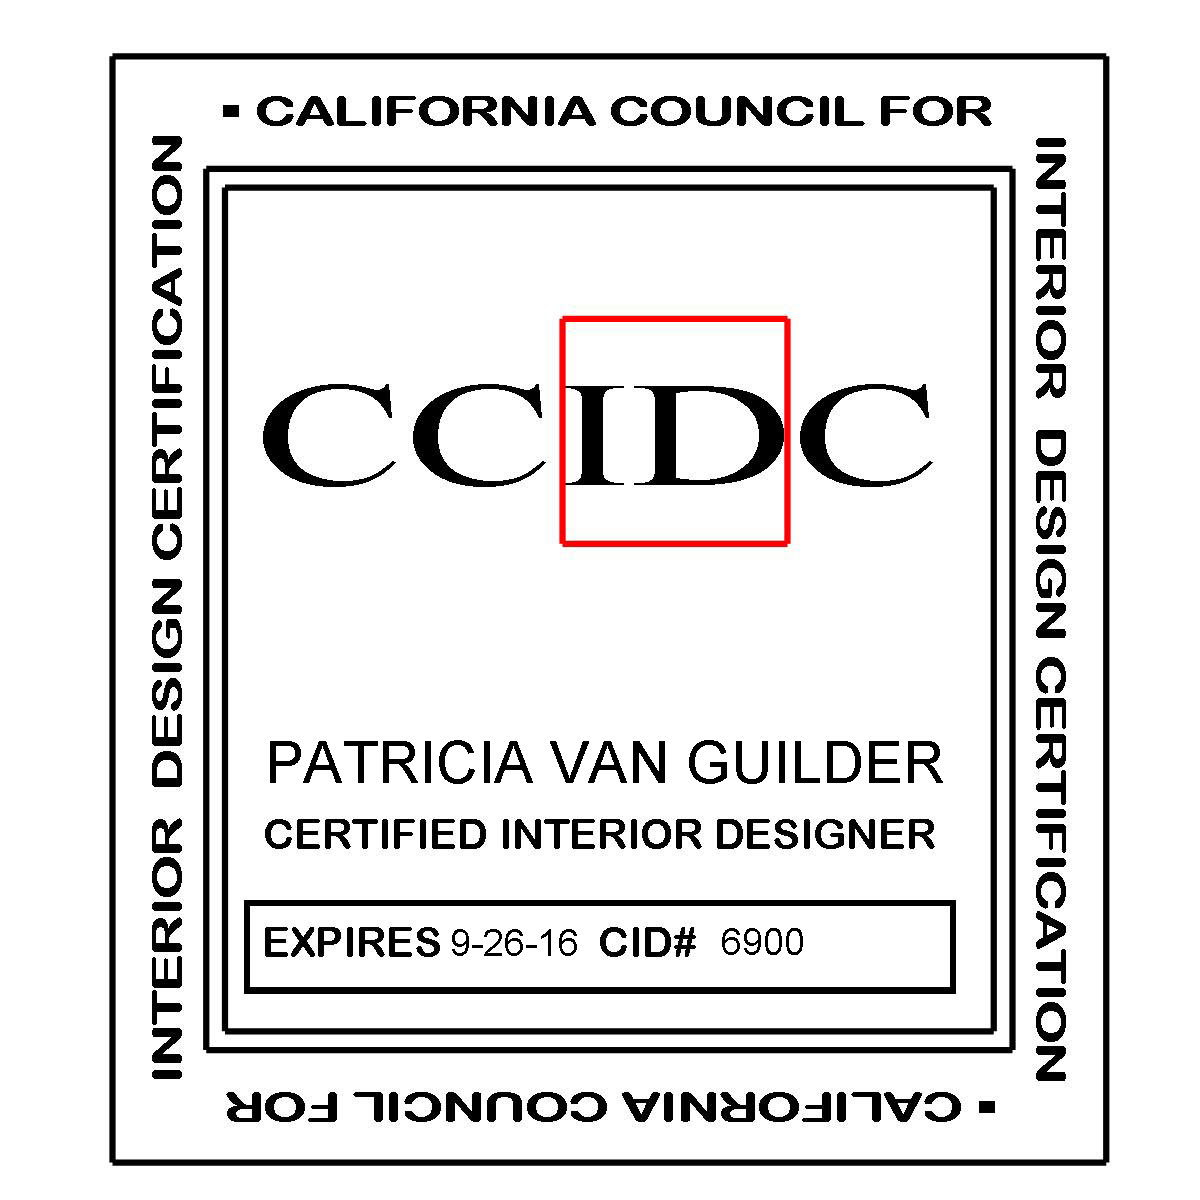 83 Interior Design Certification California Read The Latest Edition Of Ccidc Capitol News